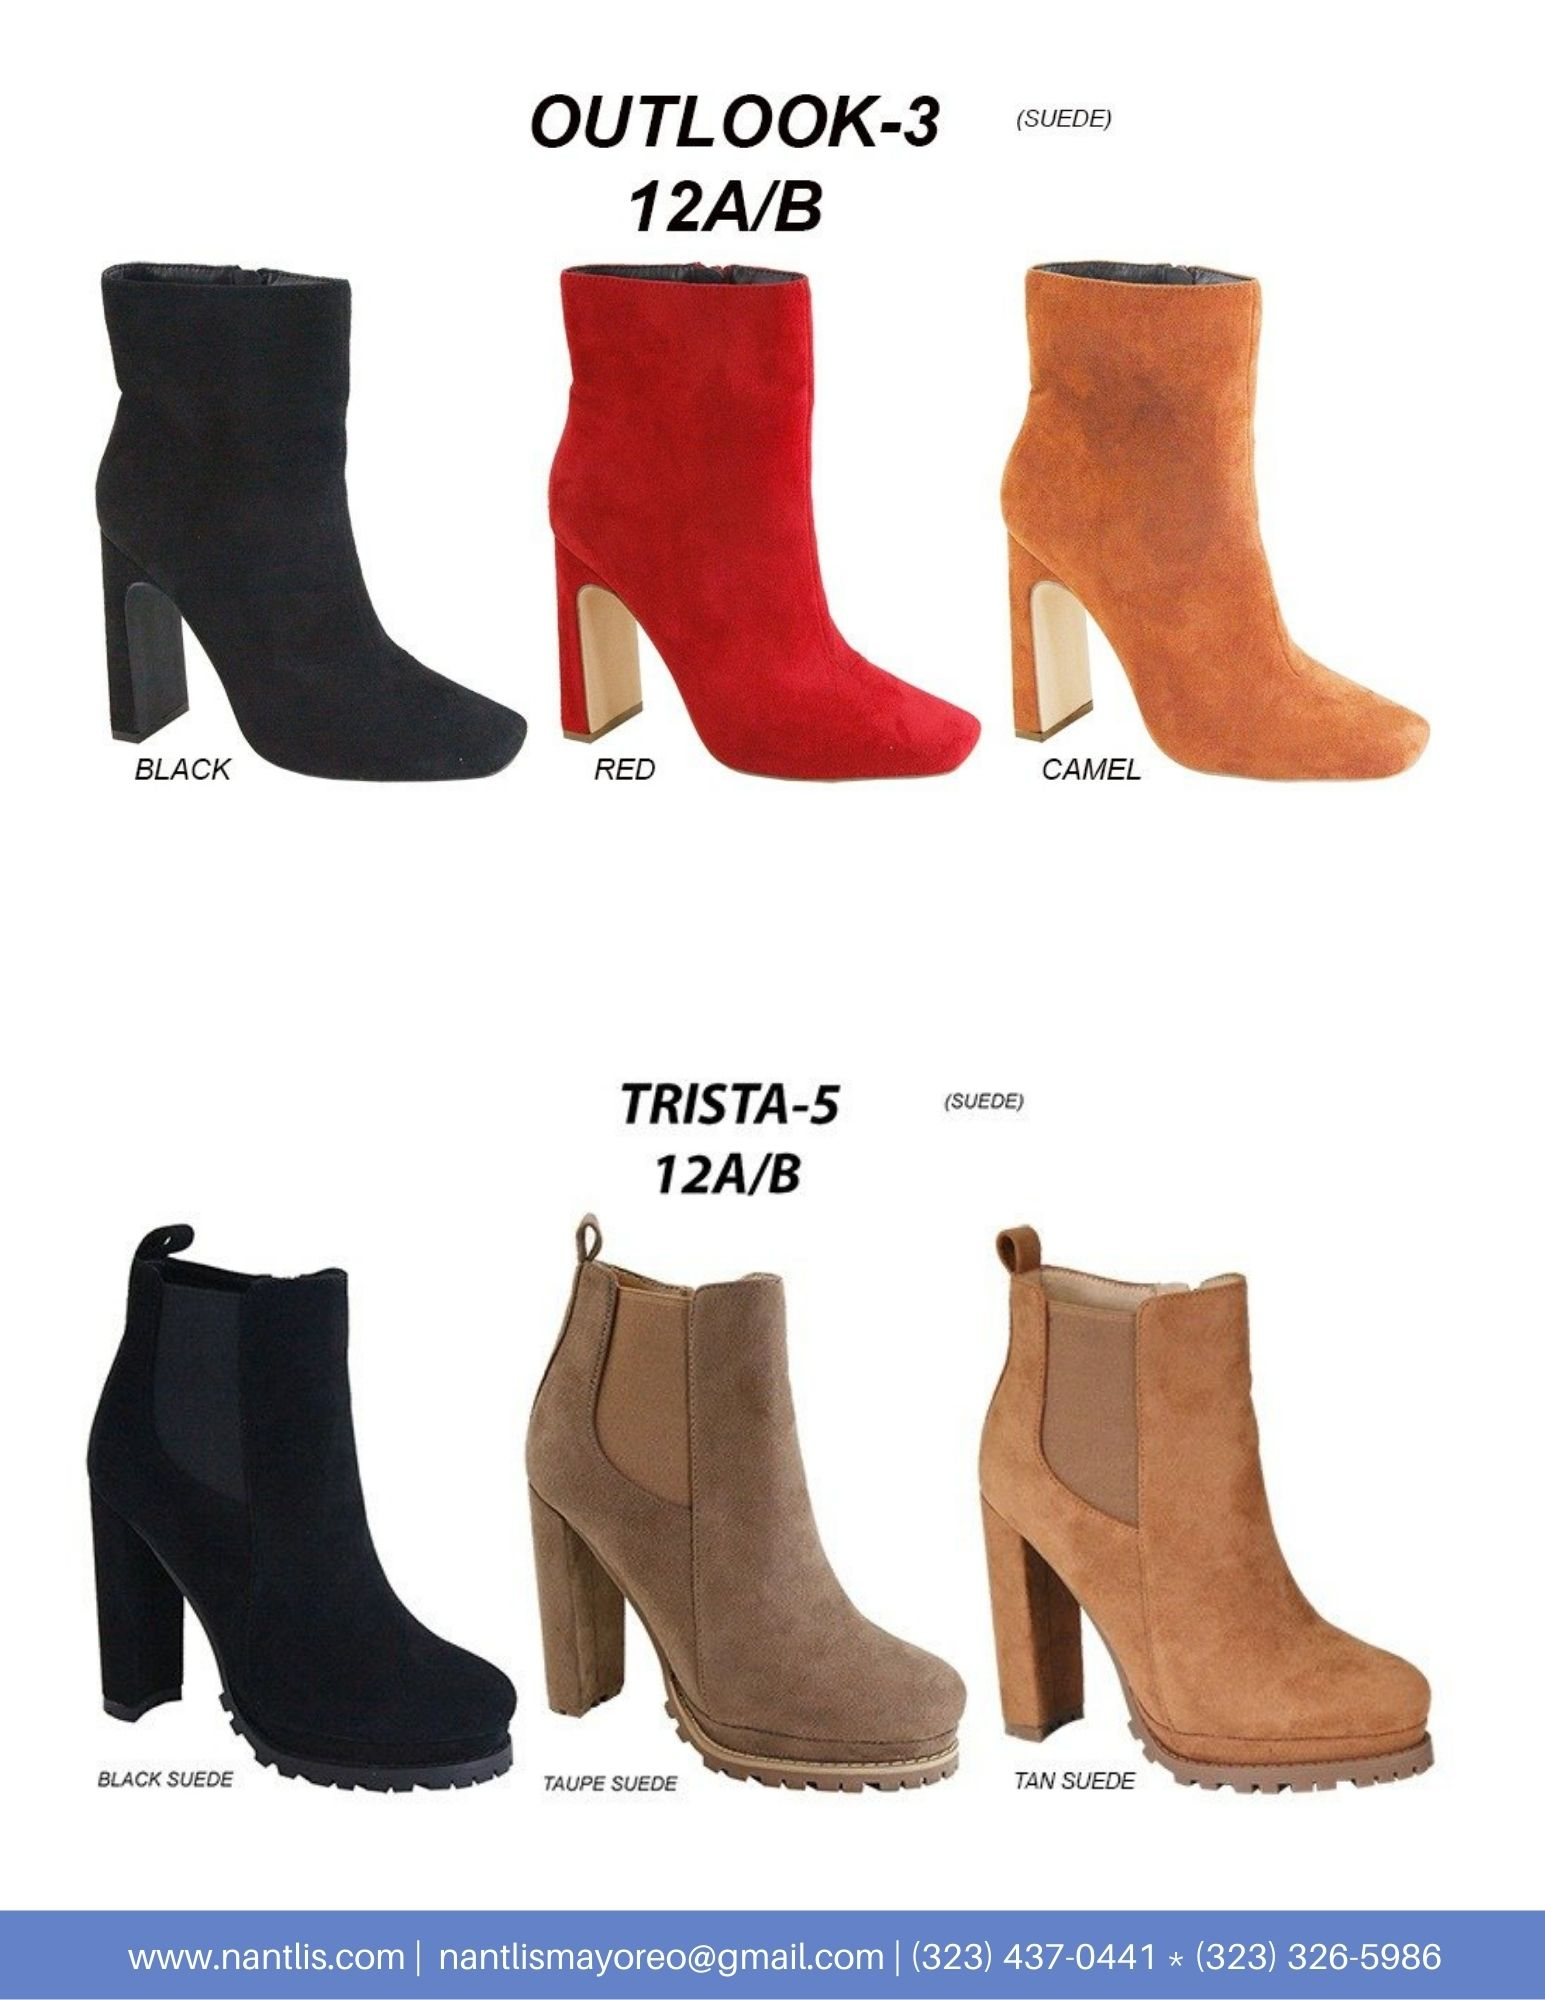 Nantlis Vol AN22 Botas Mujer mayoreo Catalogo Wholesale boots for women page 08